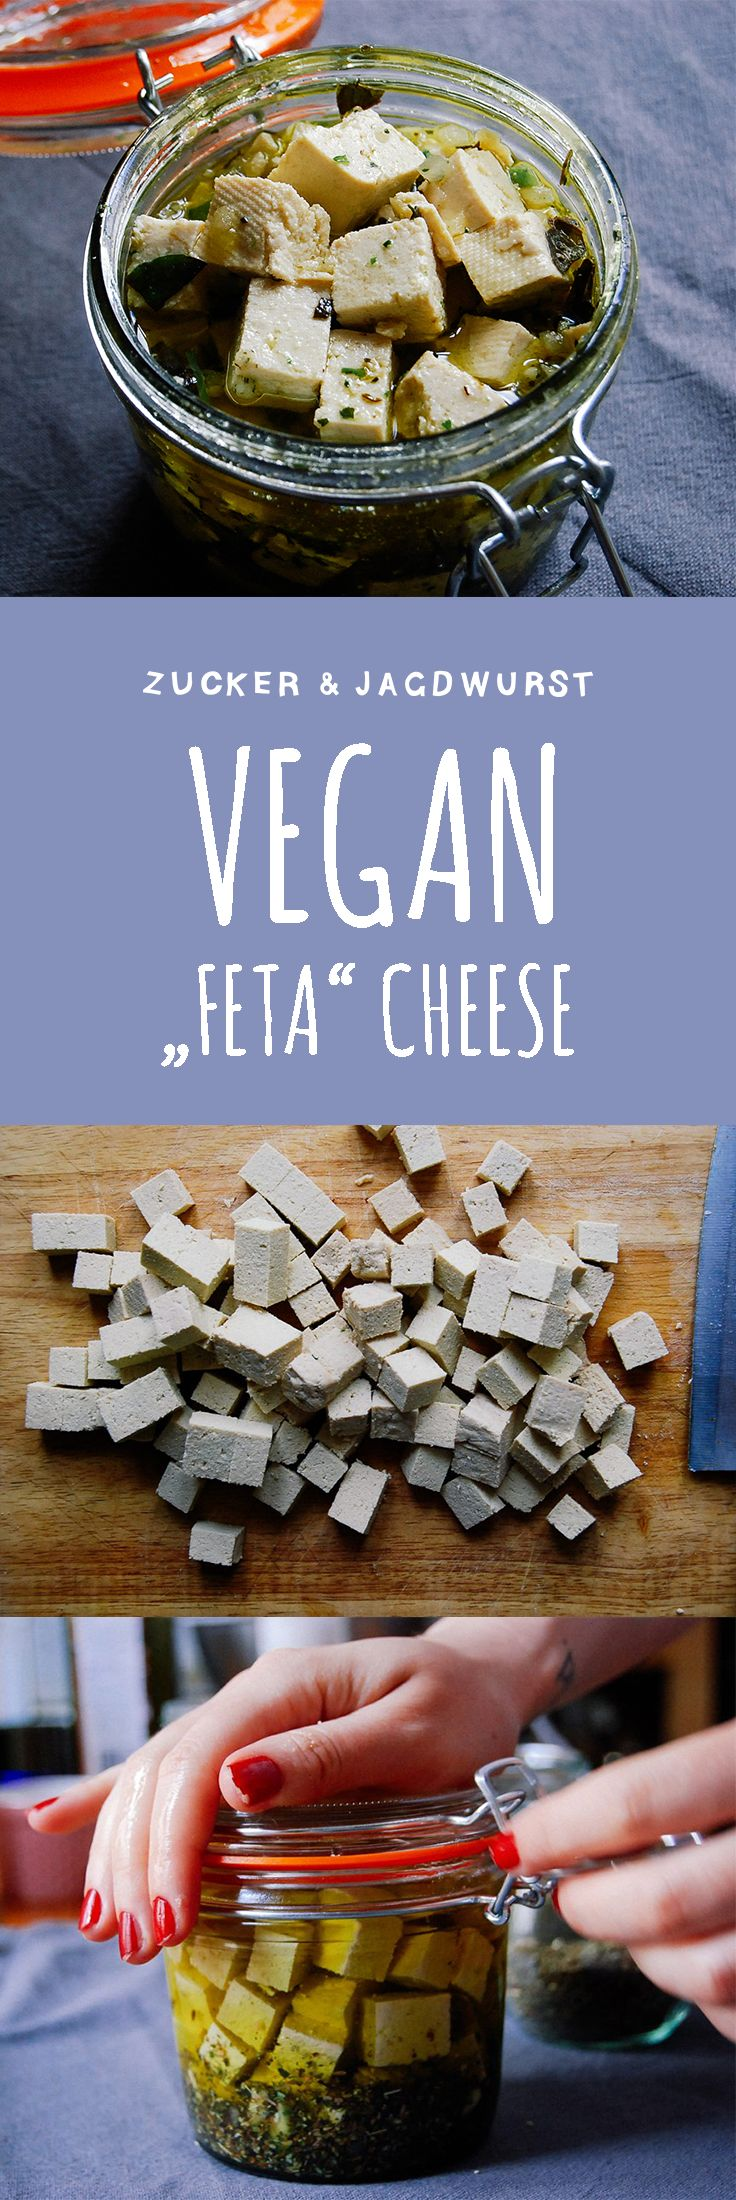 "Vegan ""Feta"" Cheese Recipe"